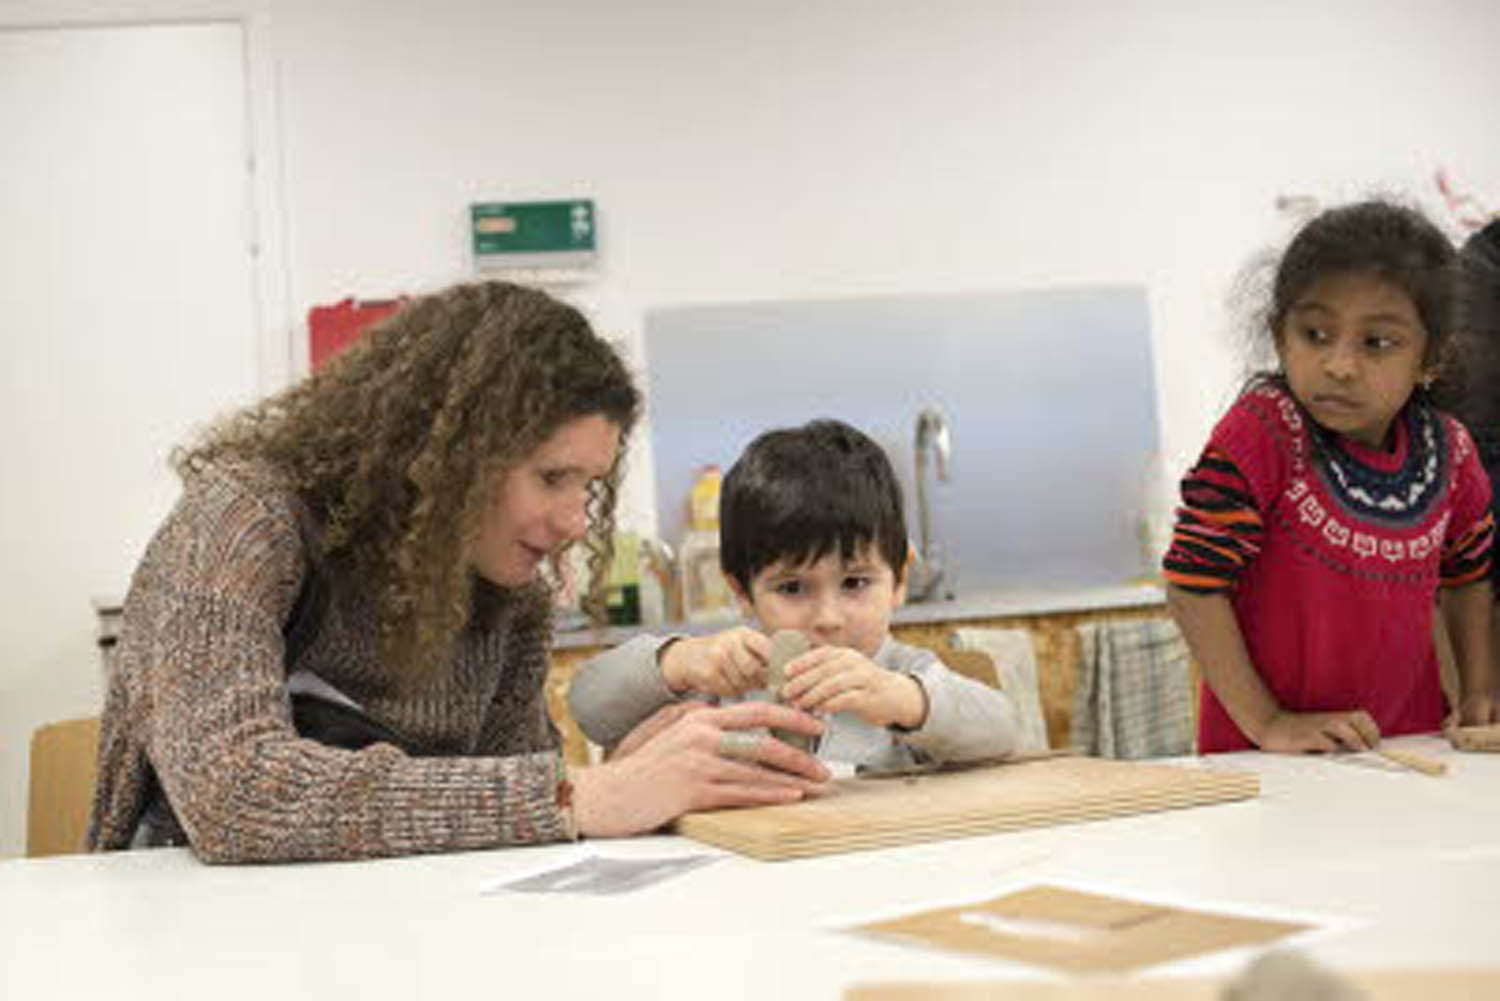 VISITE-ATELIER PARENTS-ENFANTS